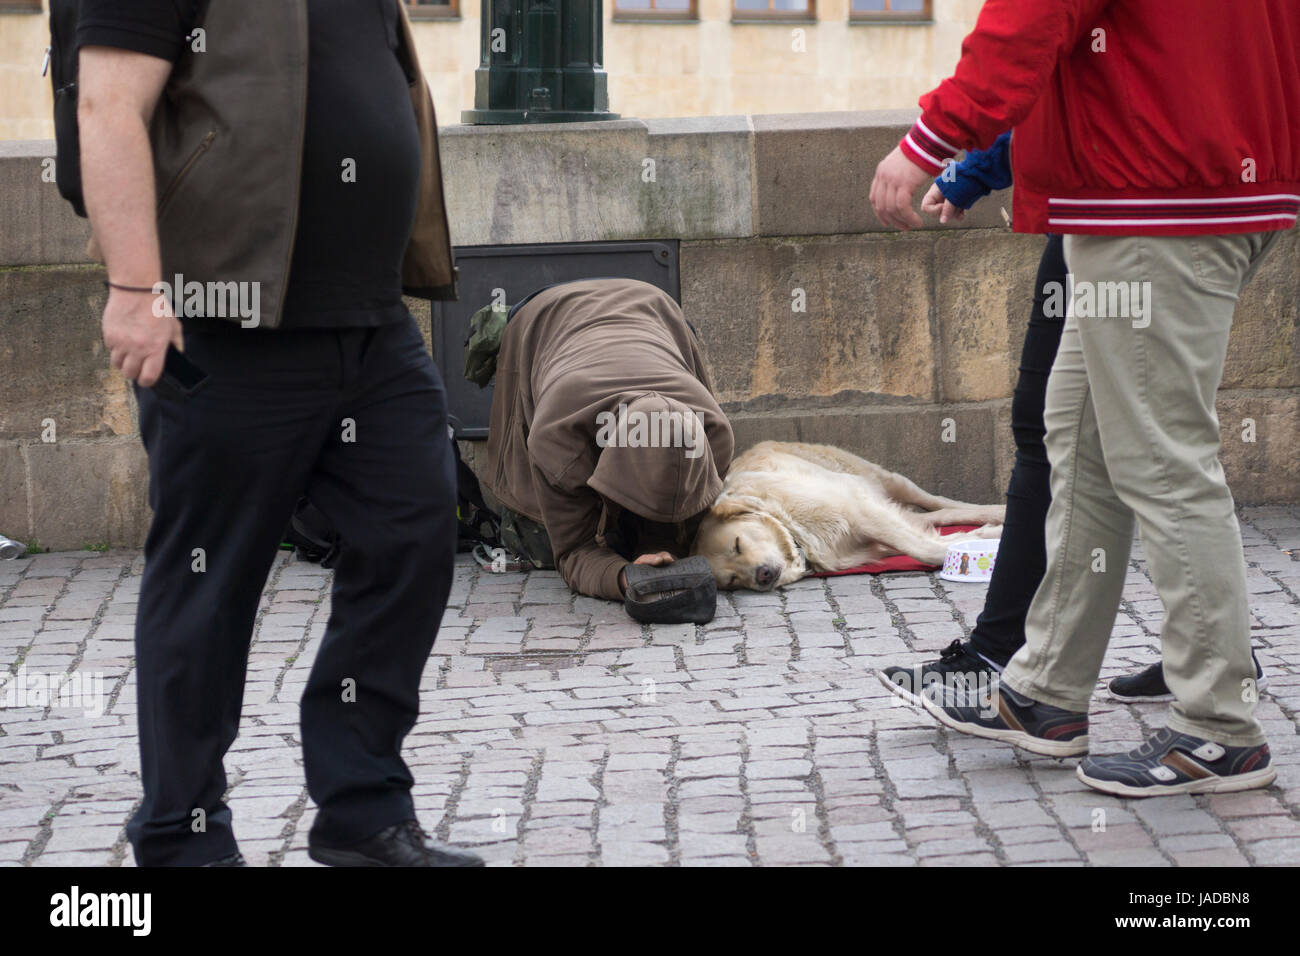 People walking past a beggar and his dog in Prague, Czech Republic - Stock Image